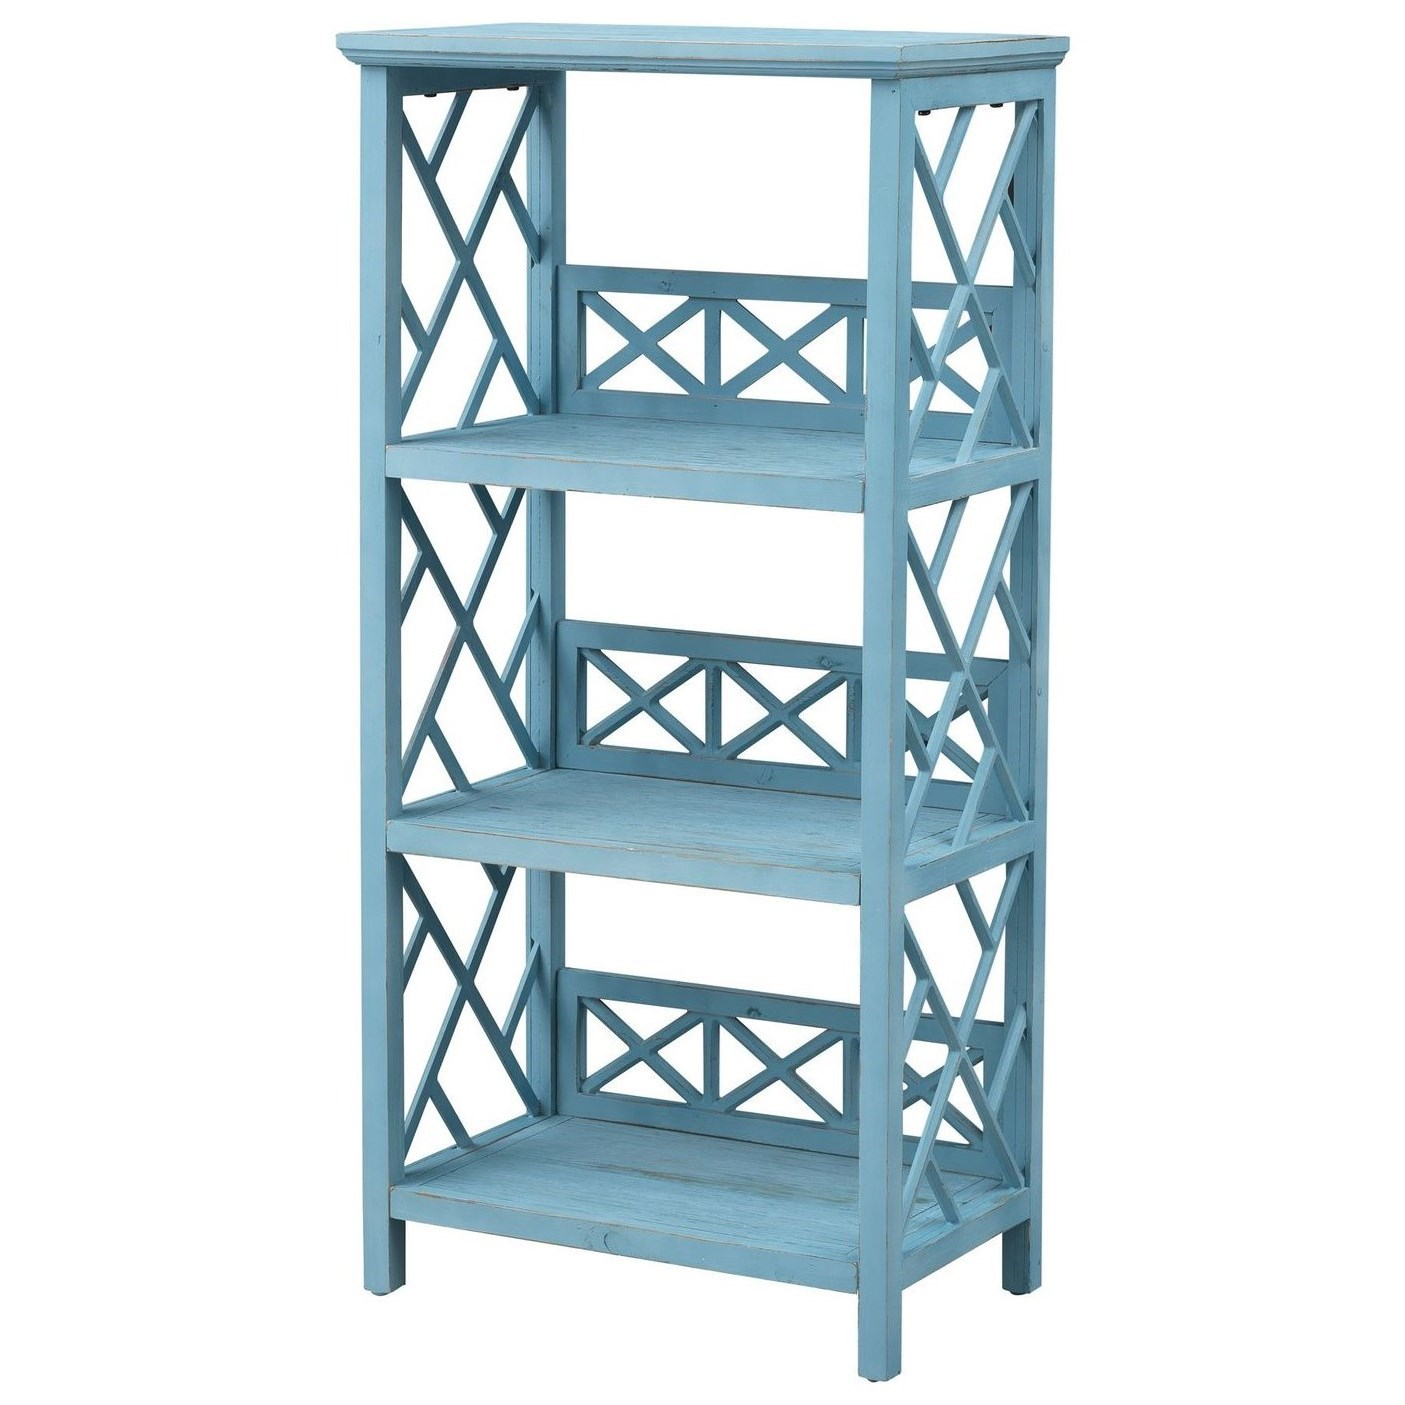 Pieces in Paradise Bookcase by Coast to Coast Imports at Baer's Furniture